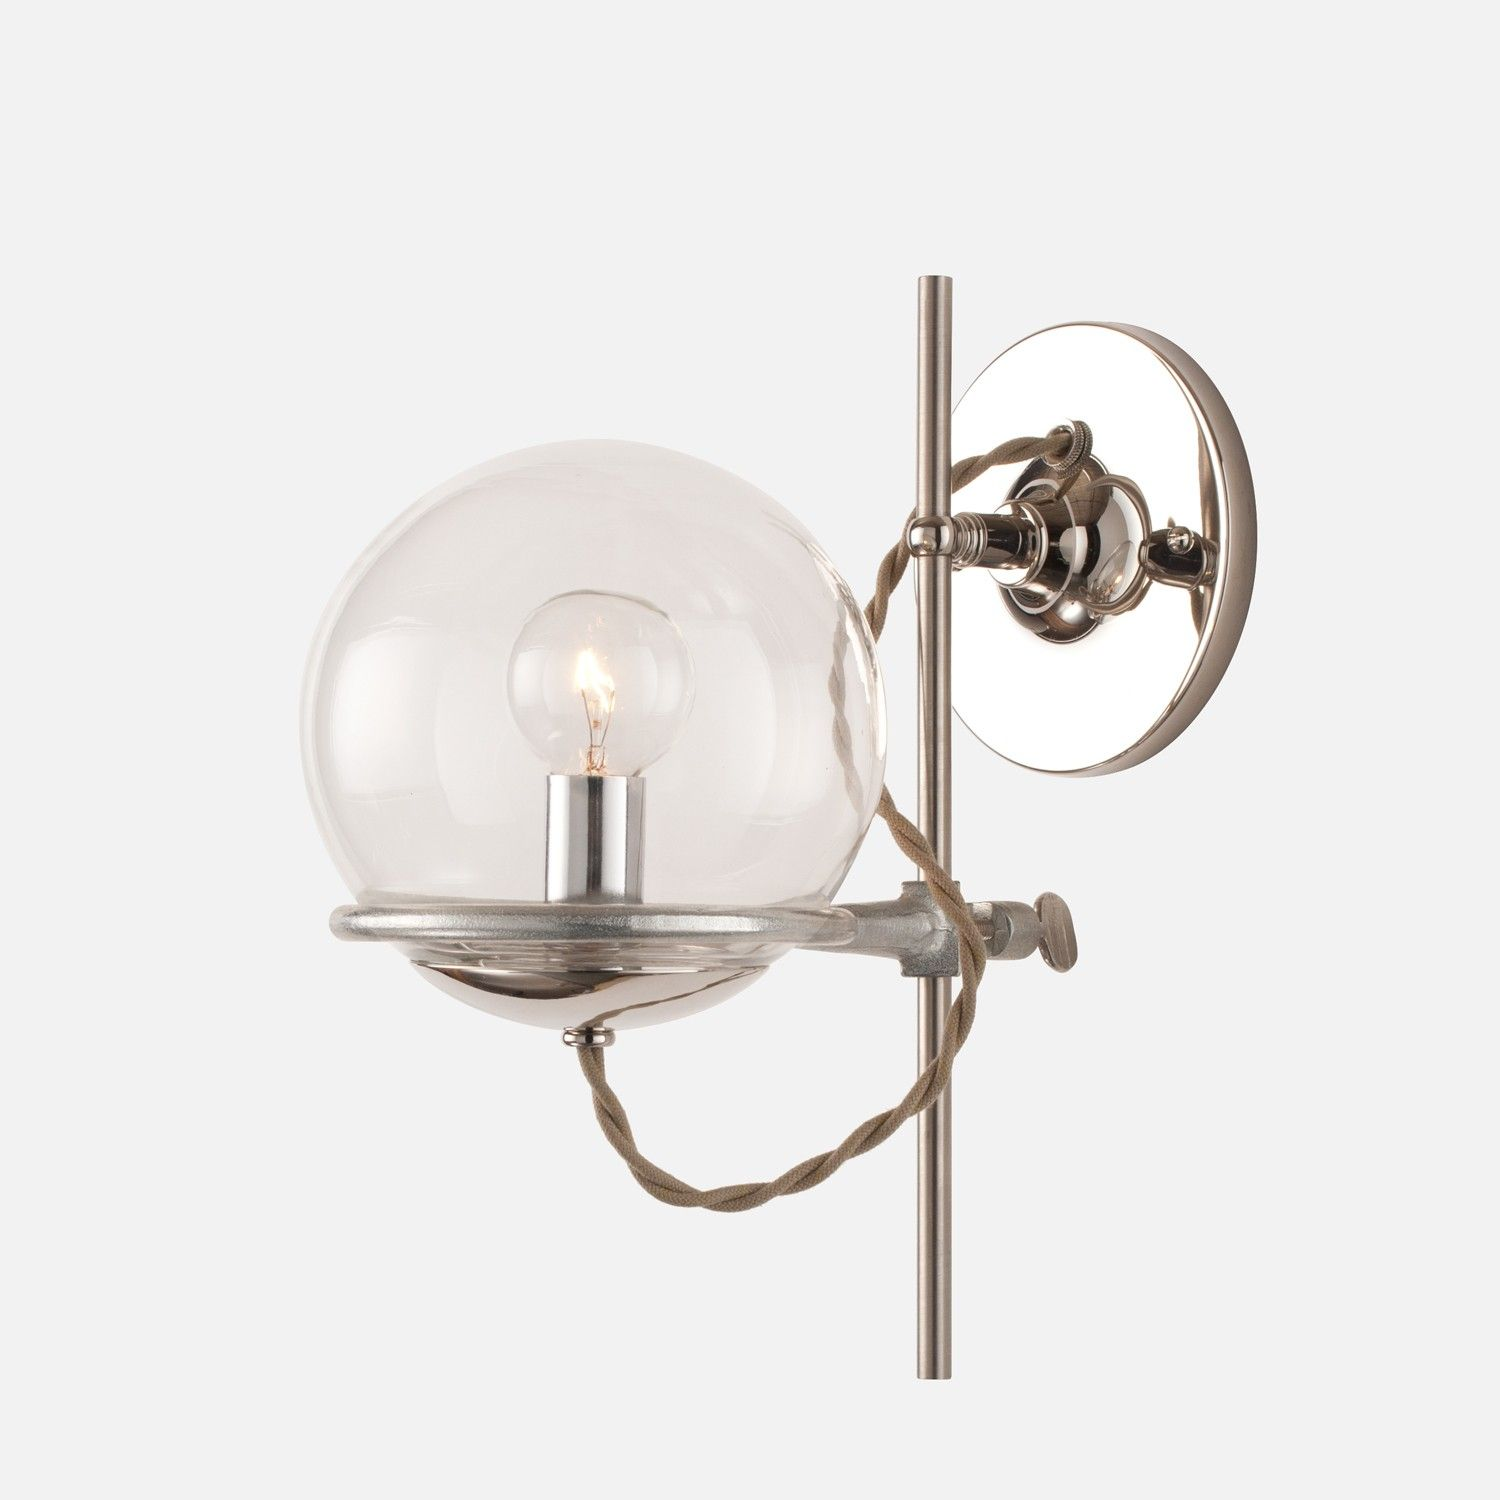 Orbit Sconce   Schoolhouse electric, Wall sconces and Lights